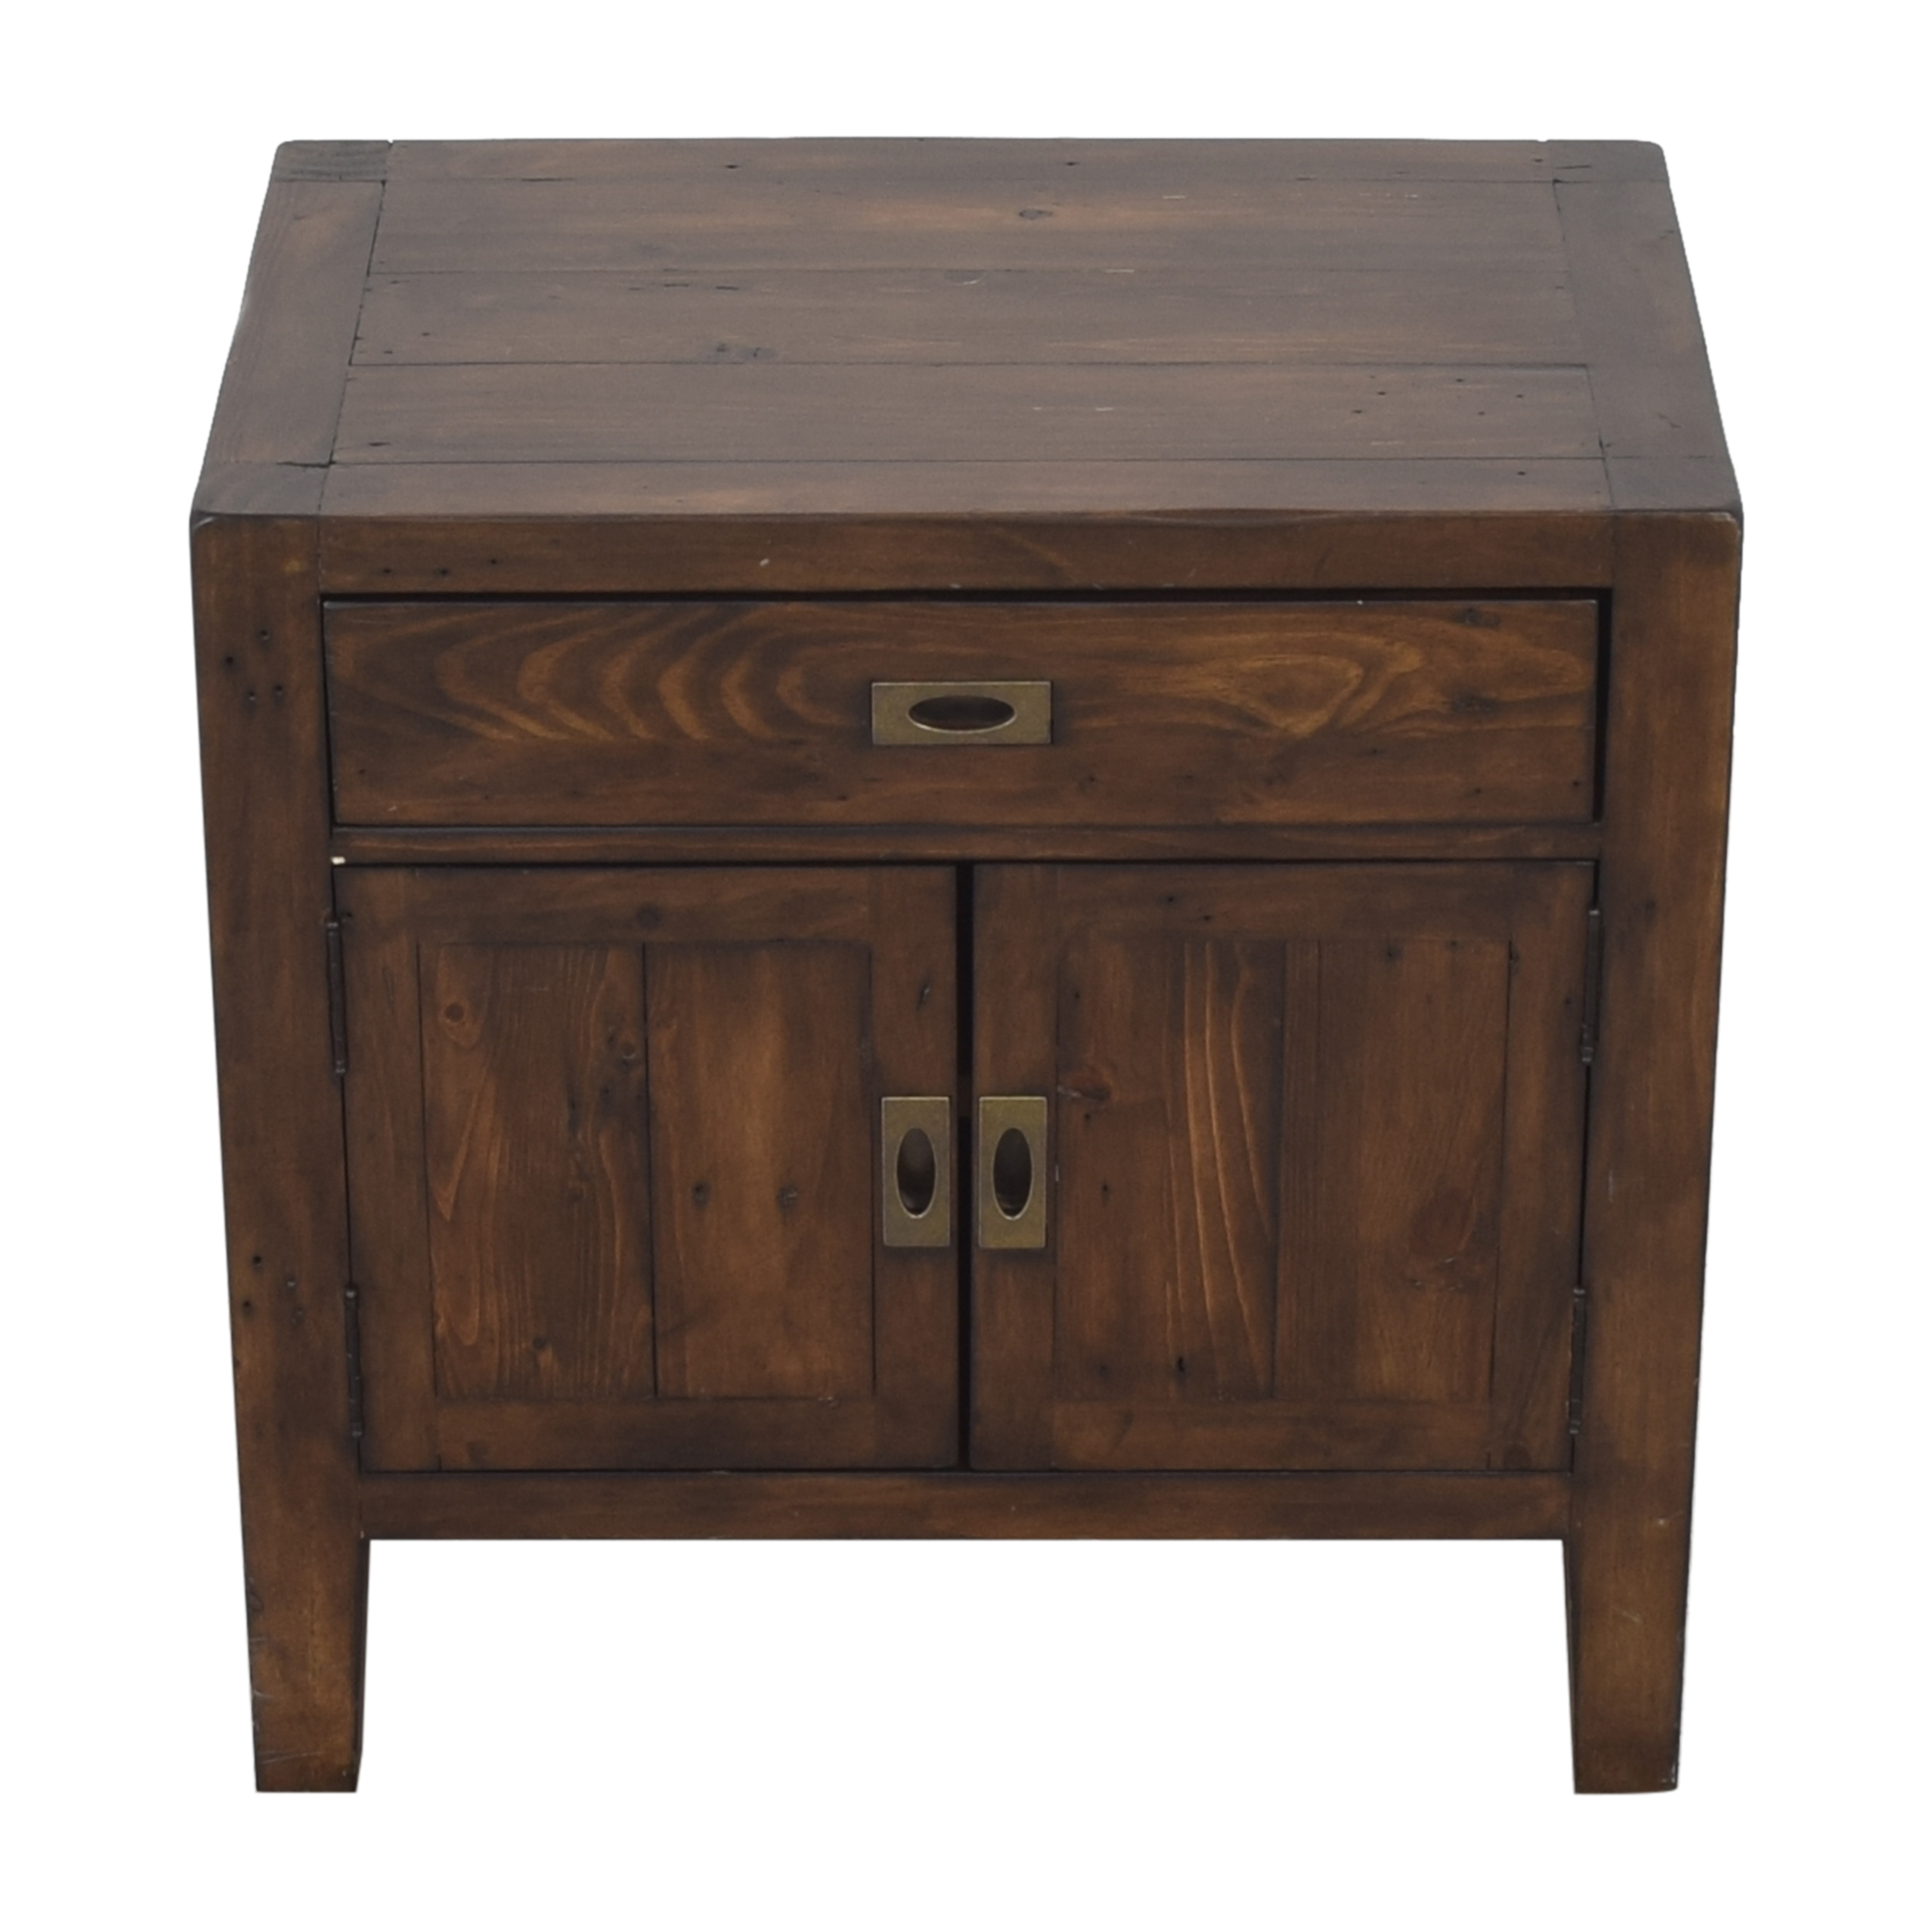 Crate & Barrel Morris Nightstand / End Tables